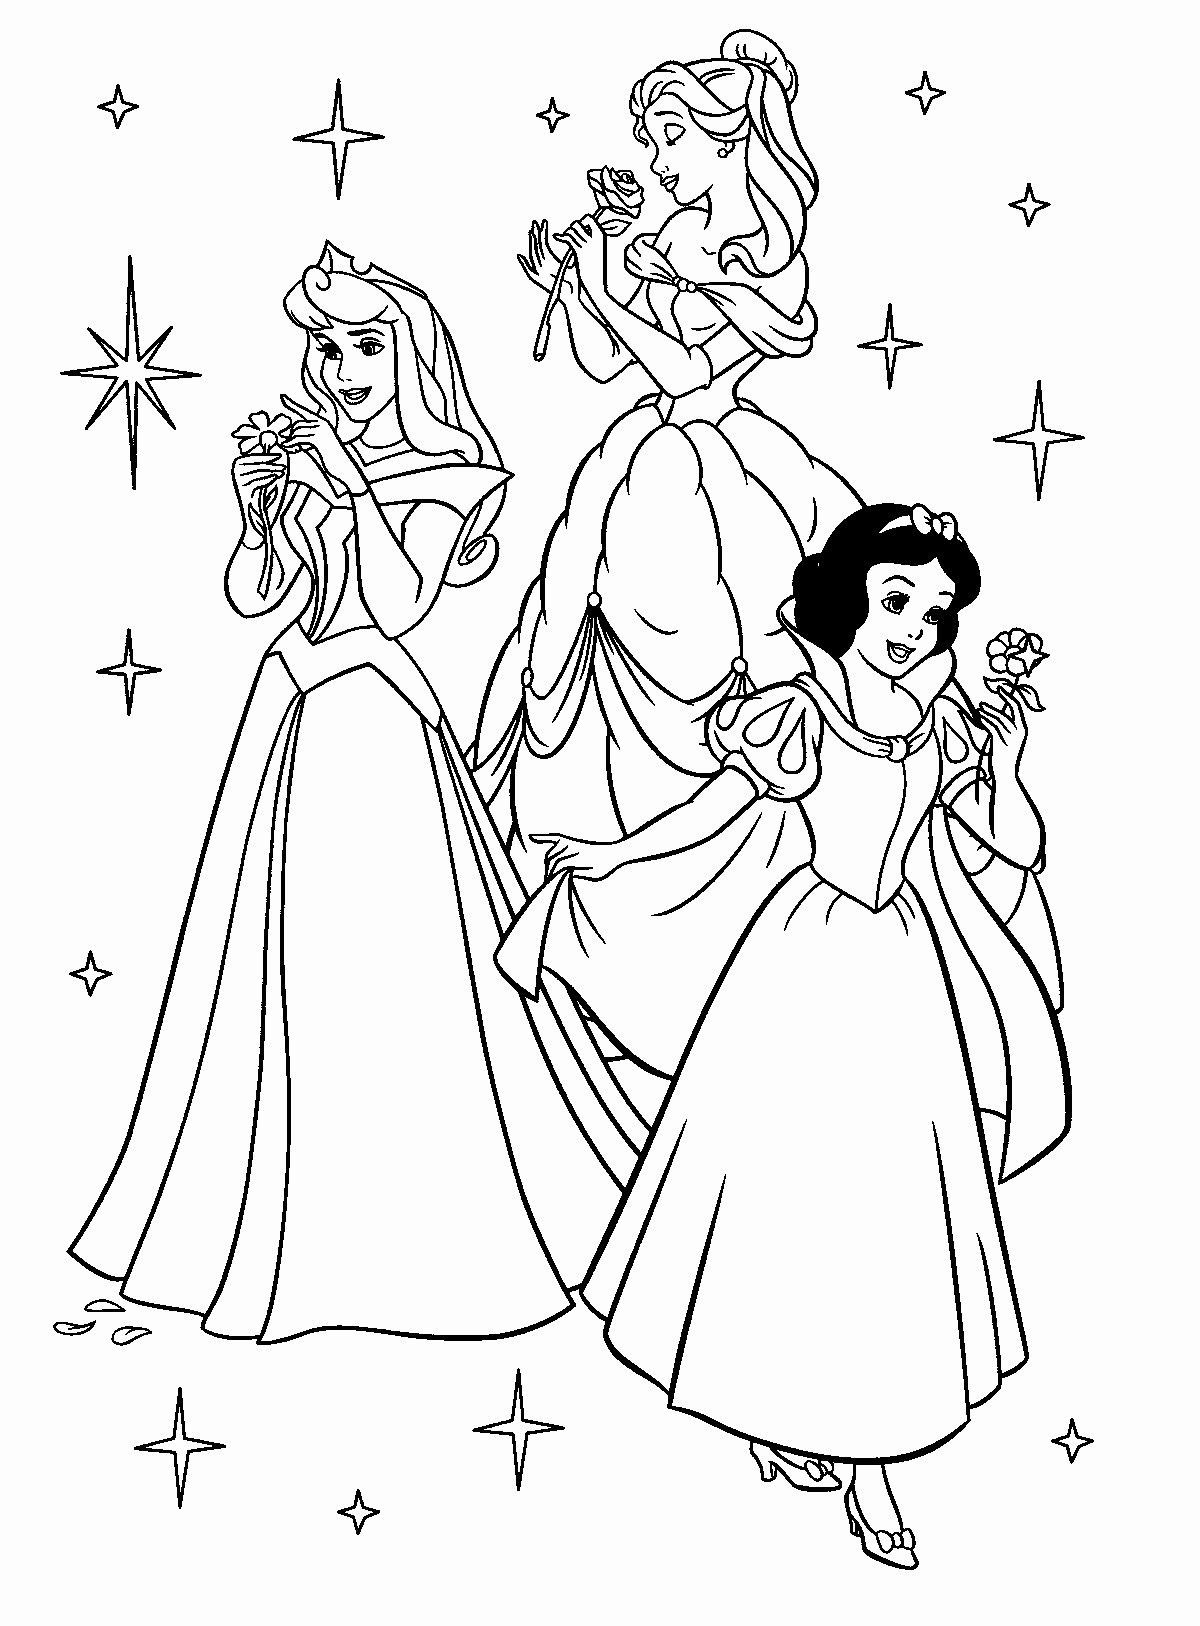 Princess Colouring Pages A4 Through The Thousand Images On The Net About Prince Princess Coloring Pages Disney Princess Coloring Pages Disney Coloring Sheets